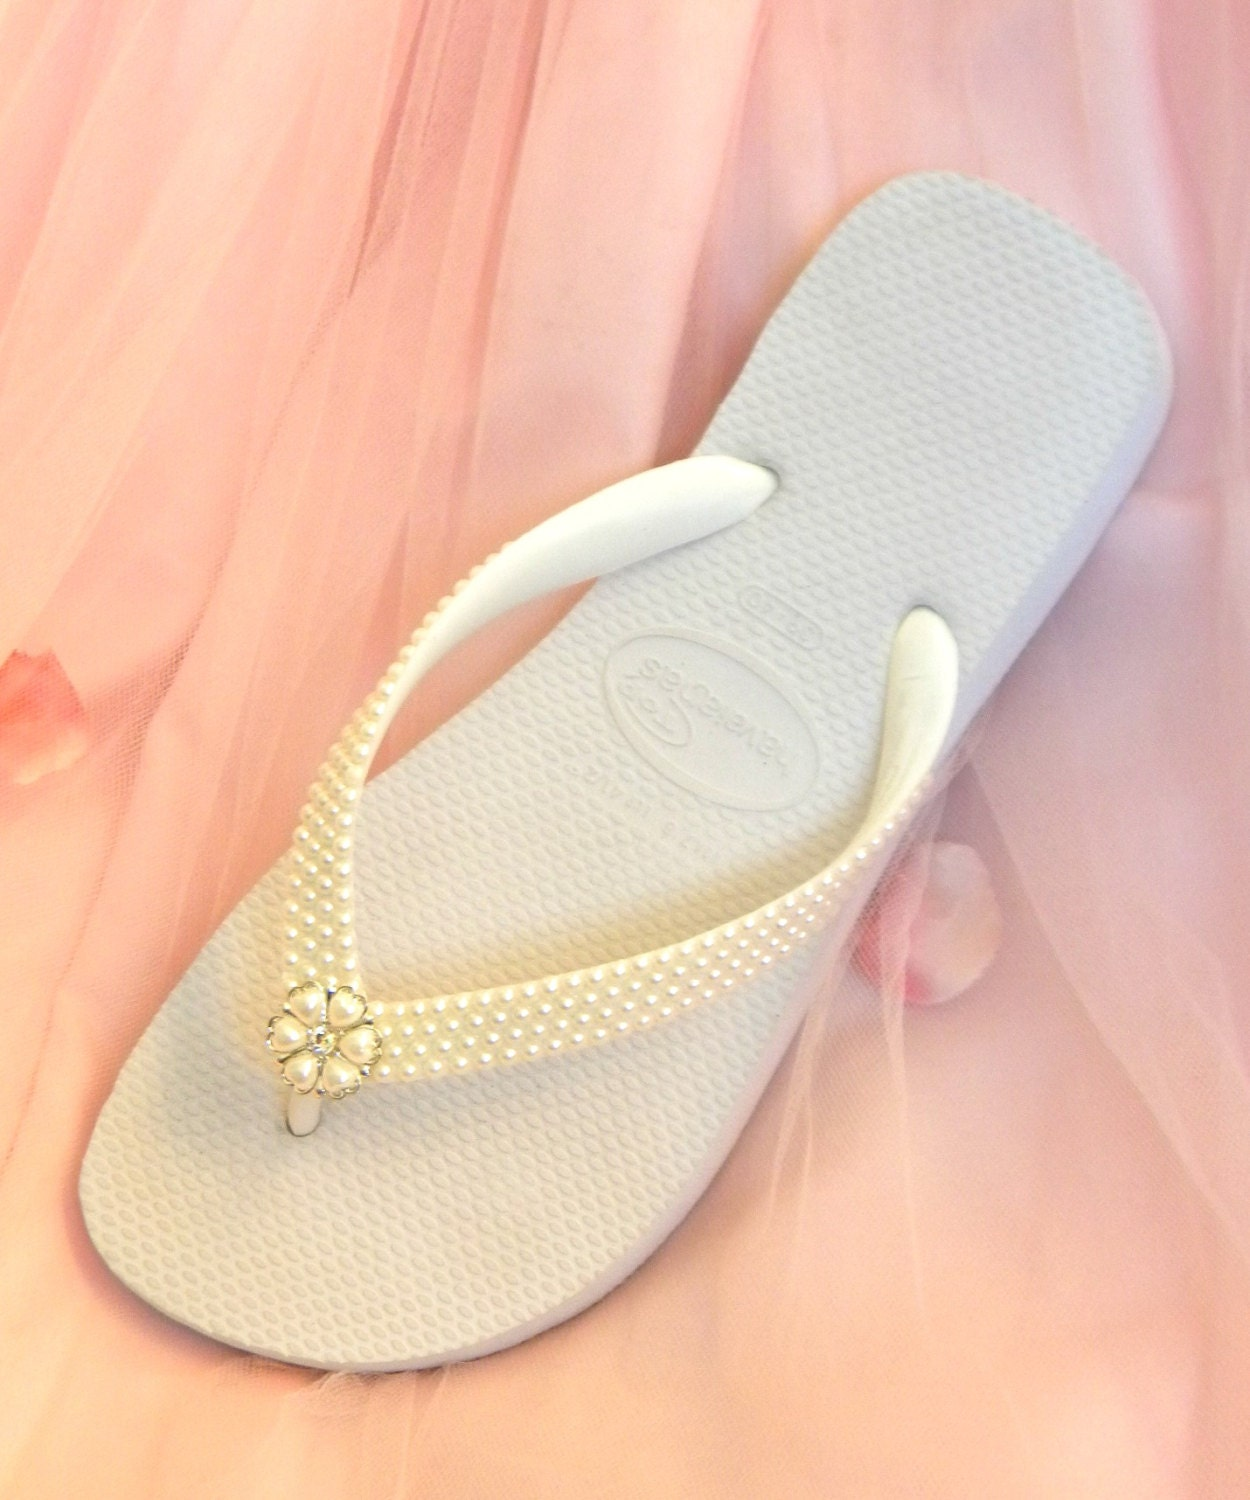 a19395d8f Ivory Wedding Flip Flops White Pearls Silver Rock w  Swarovski Crystal  Beach Havaîanas Flat Cariris Wedge Heel Bridal Bridesmaid Thong Shoes